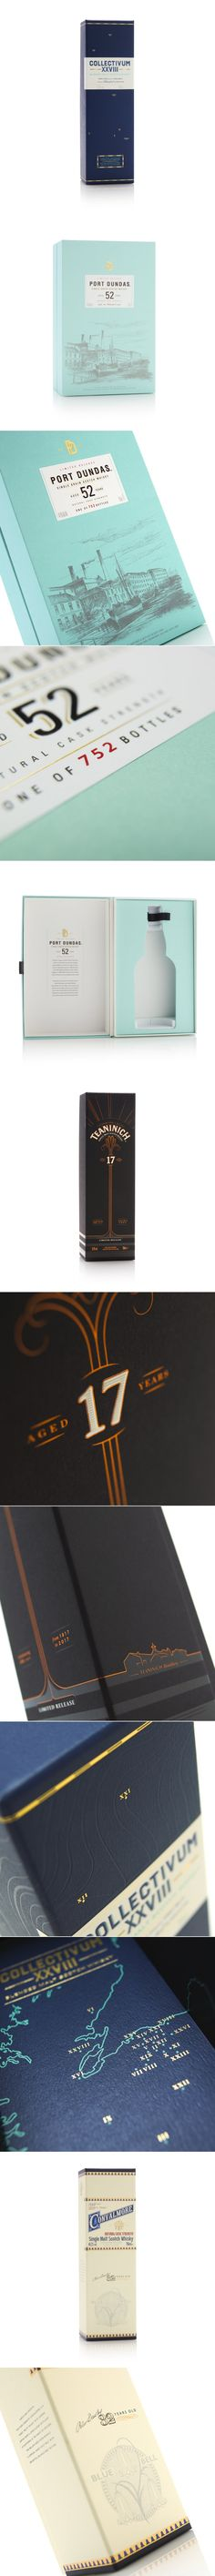 Check Out The Luxurious Packaging For These Special Release Whiskies — The Dieline | Packaging & Branding Design & Innovation News